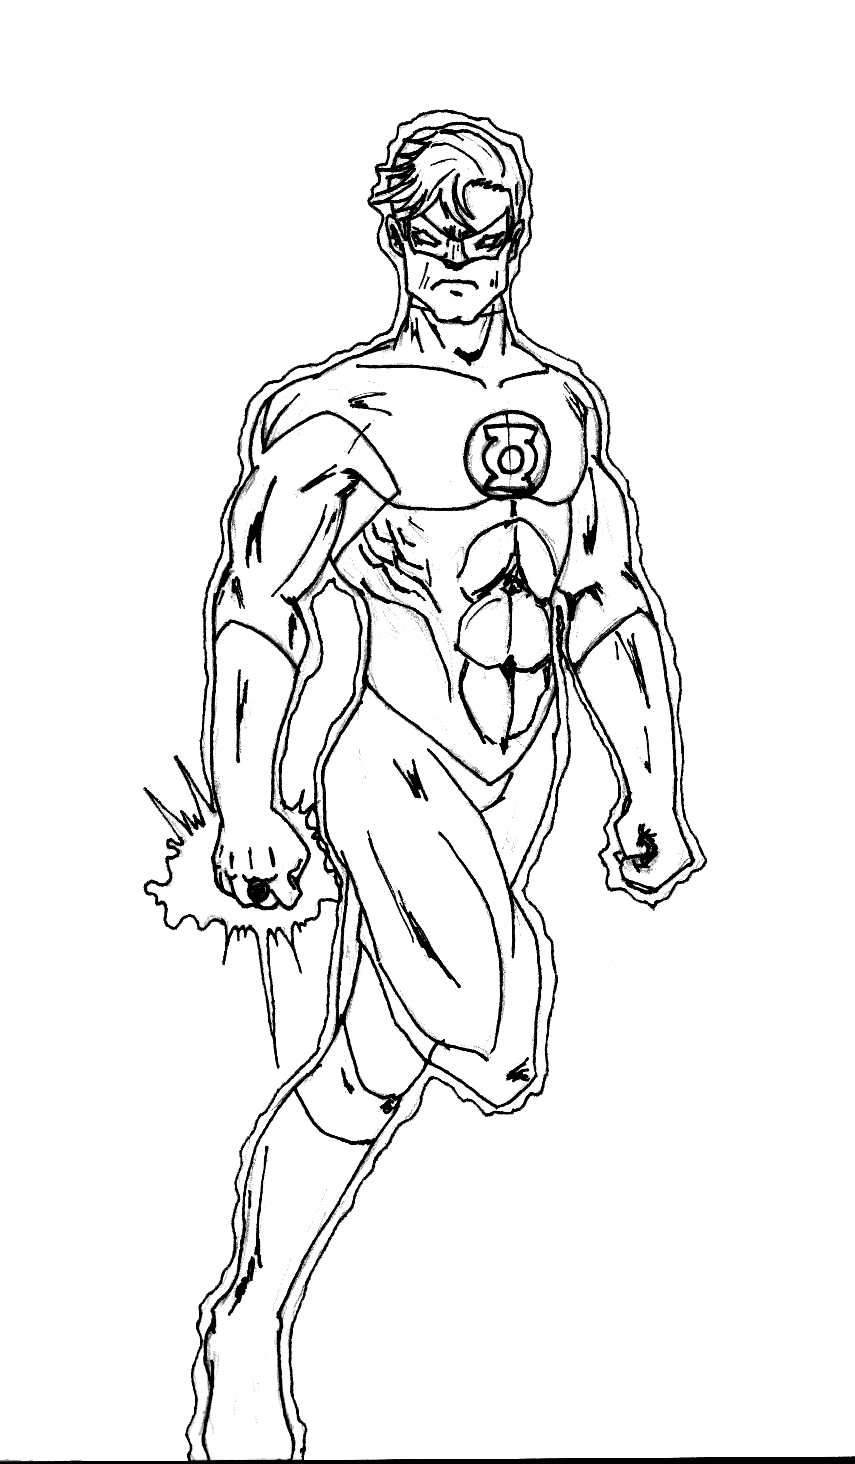 green lantern printable coloring pages green lantern coloring pages educative printable green lantern green pages coloring printable